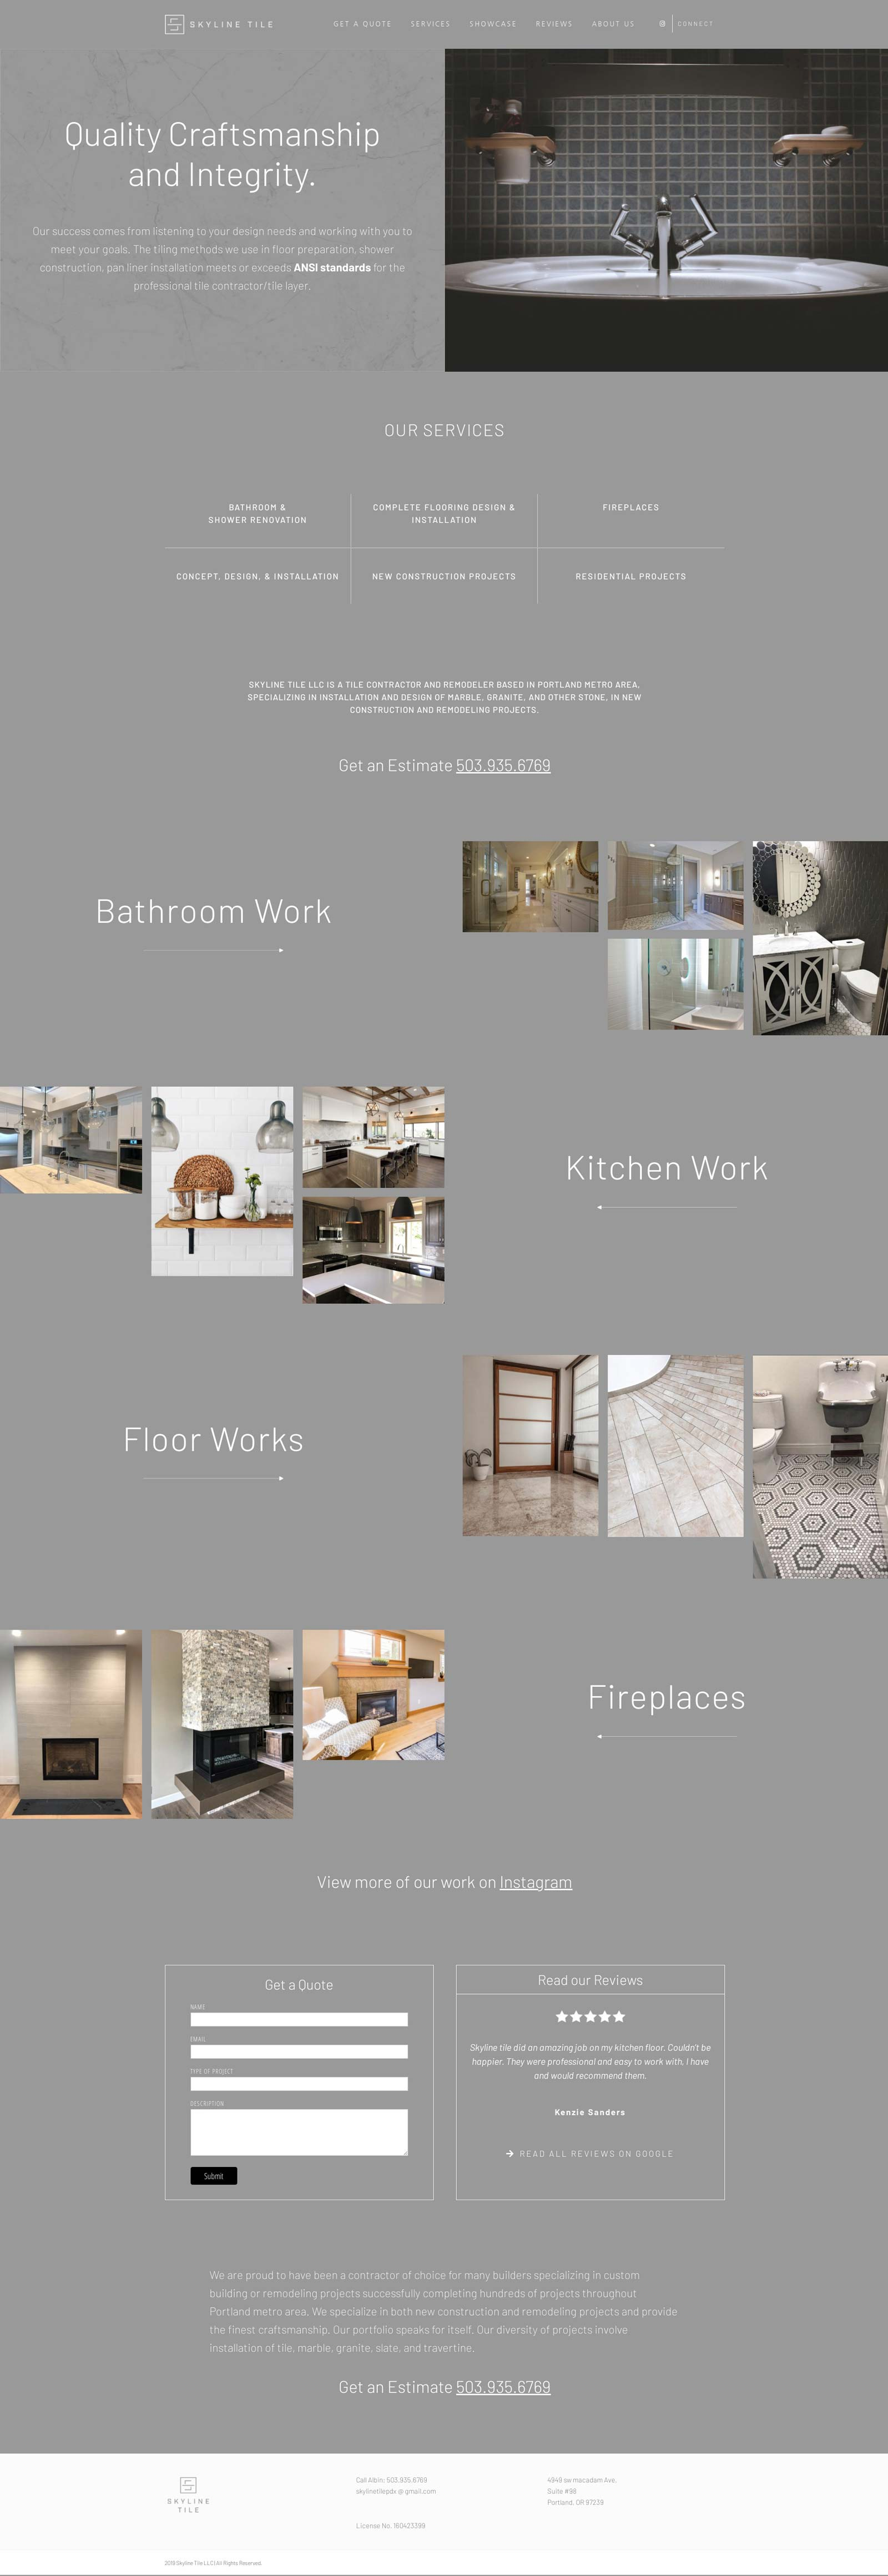 Tile and Remodling Web Design in Idaho